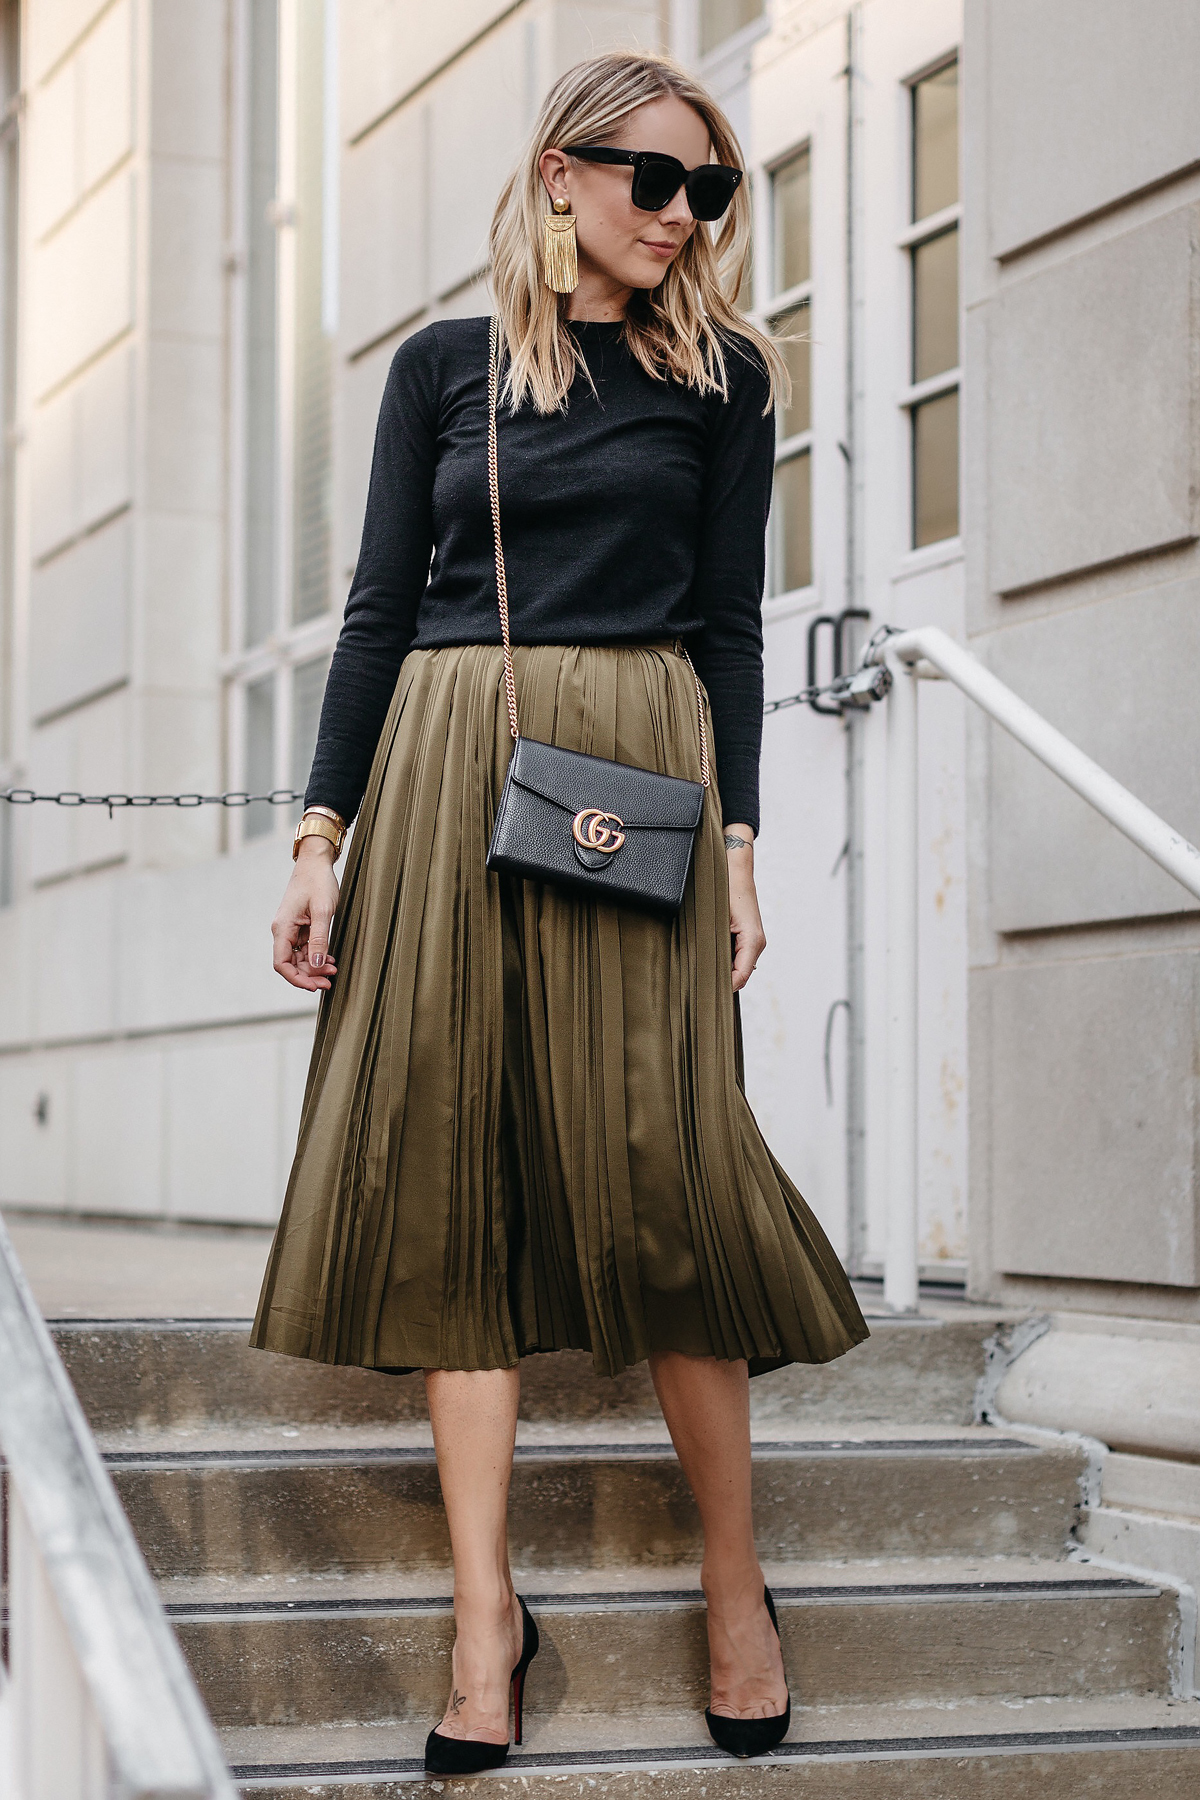 Fashion-Jackson-Black-Sweater-Robert-Rodriguez-Green-Pleated-Skirt-Gucci-Marmont-Handbag-Christian-Louboutin-Black-Pumps-3.jpg